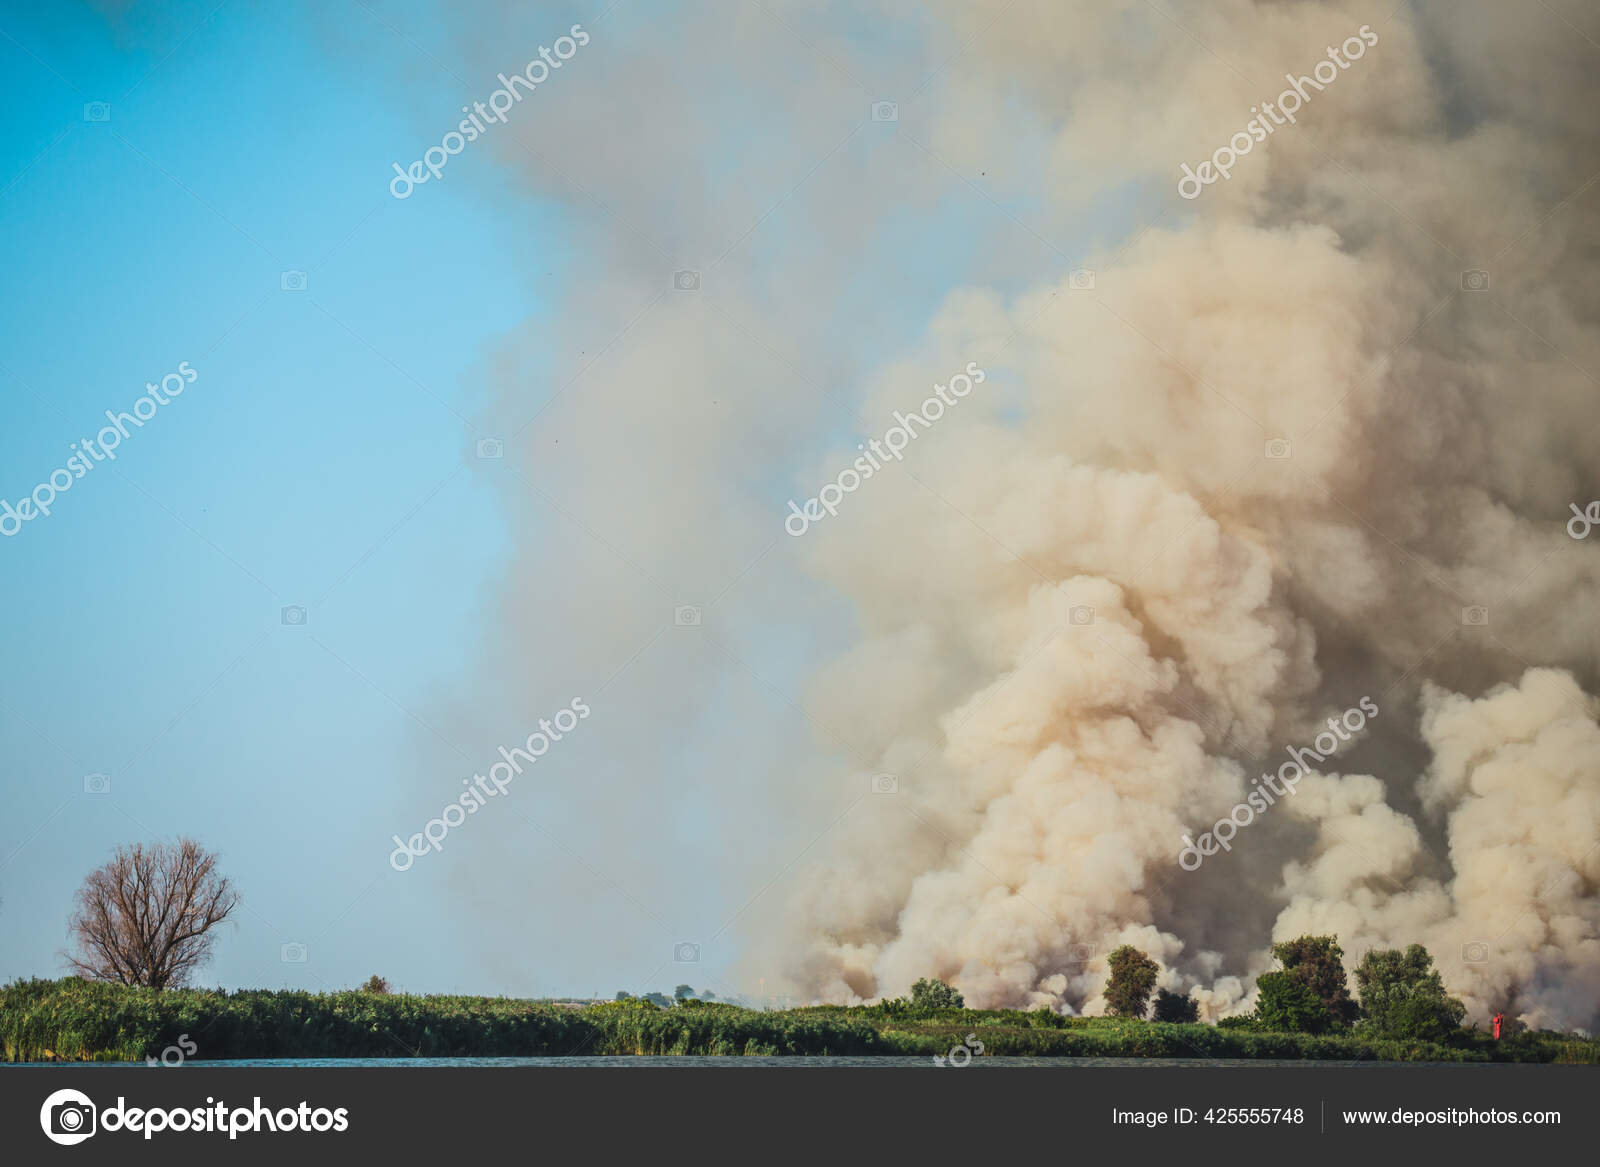 Large clouds of smoke, fire in nature